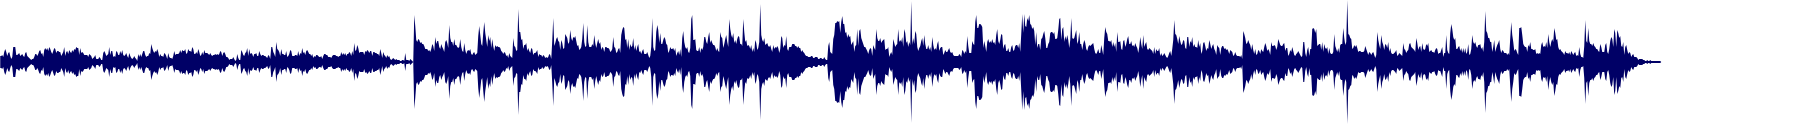 waveform of track #70080